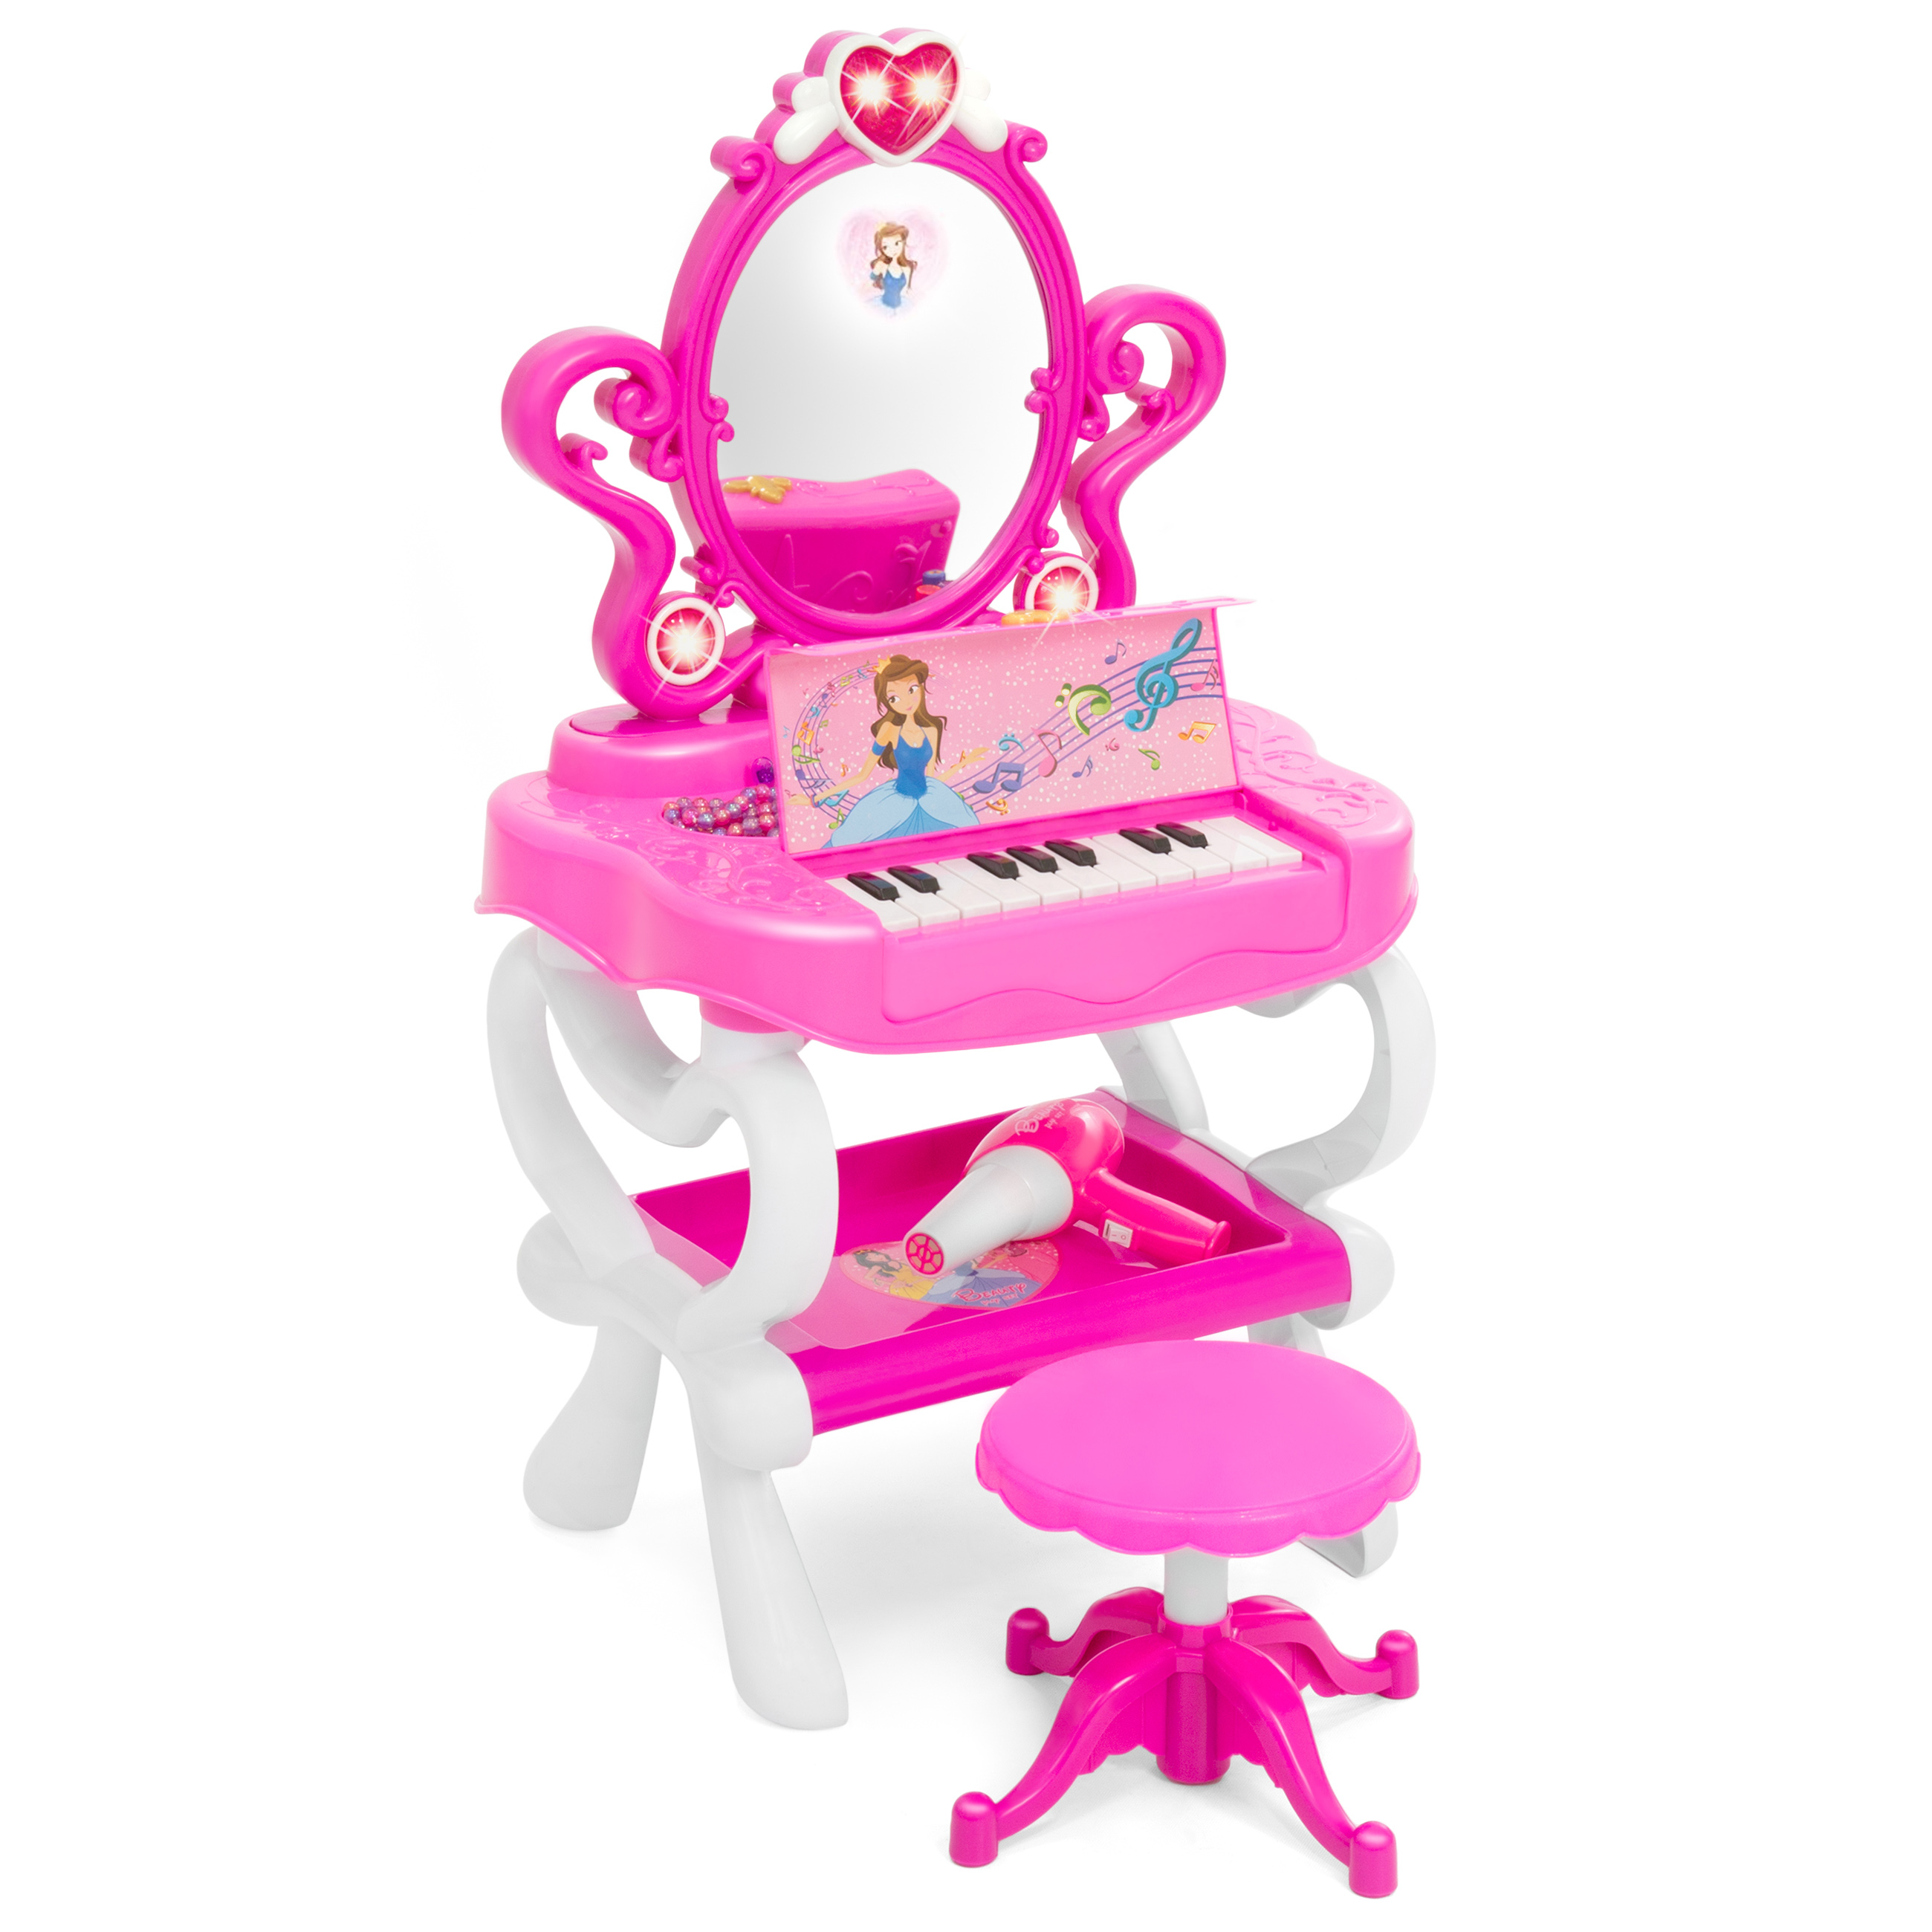 Best Choice Products Toy Vanity Set w/16 Beauty Accessories, Functional Piano Keyboard & Flashing Lights